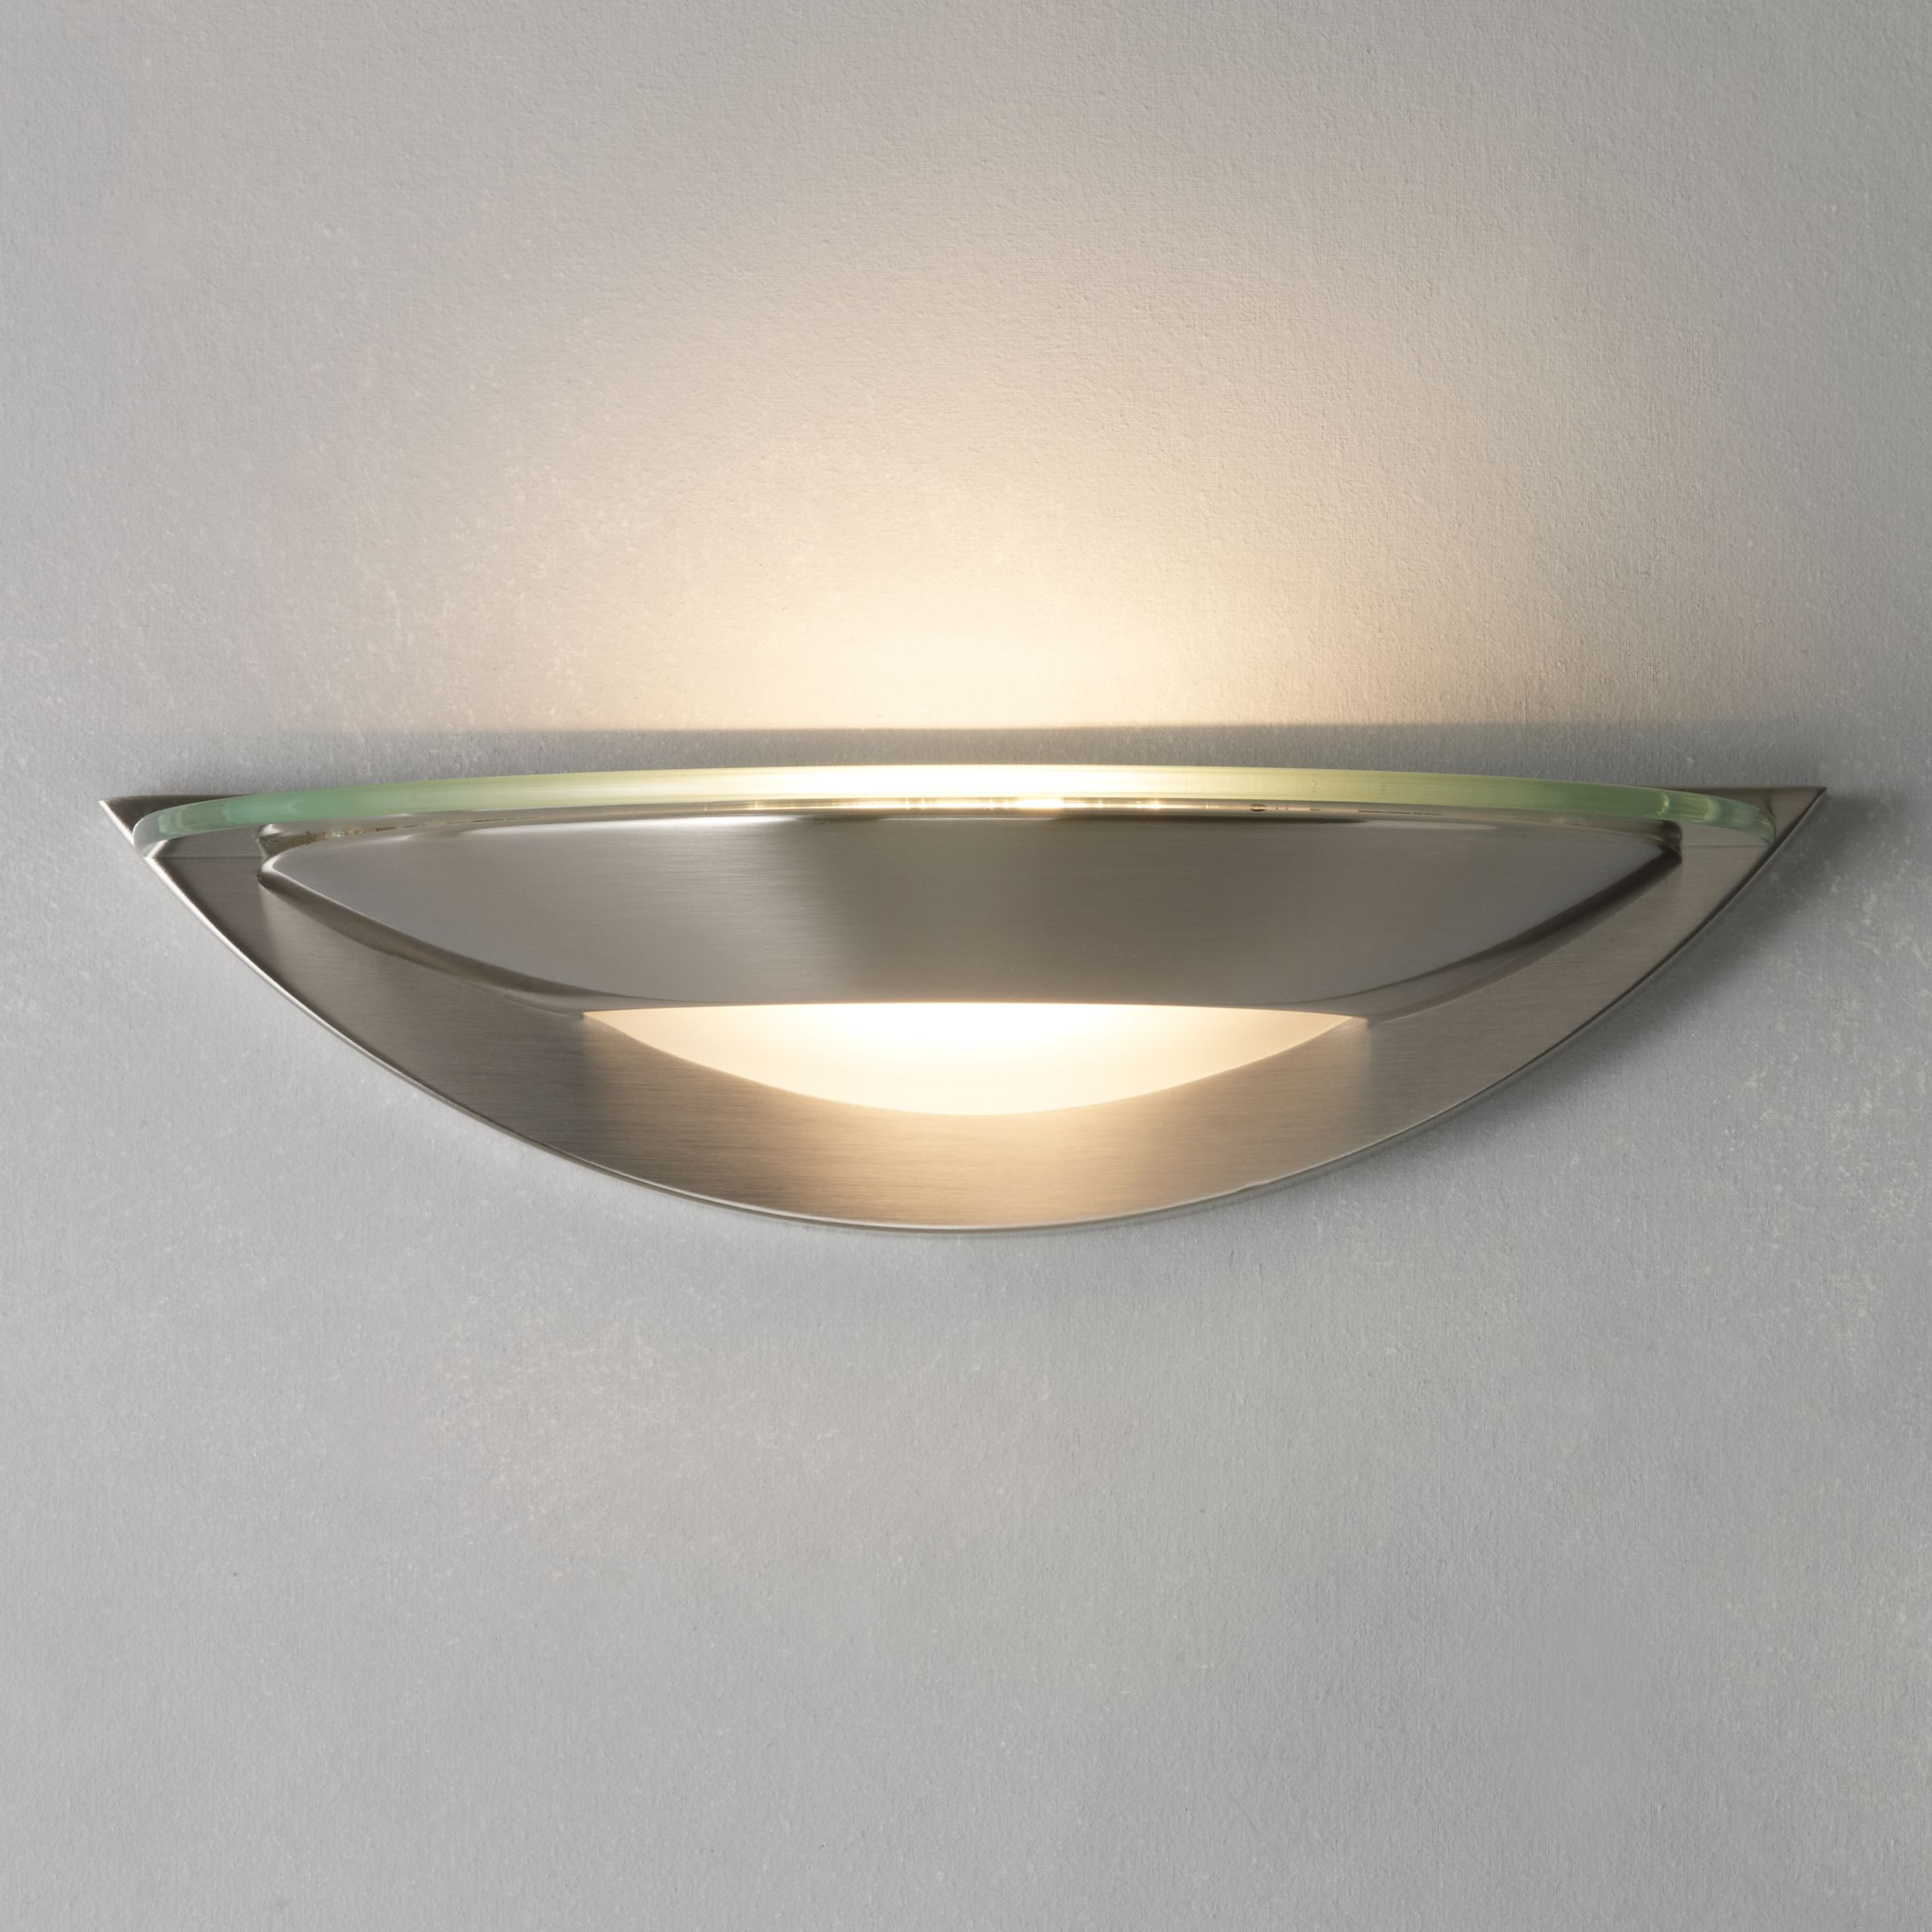 Limbo Wall Light Chrome : Cheap John Lewis Wall Lights - Compare Prices & Read Reviews